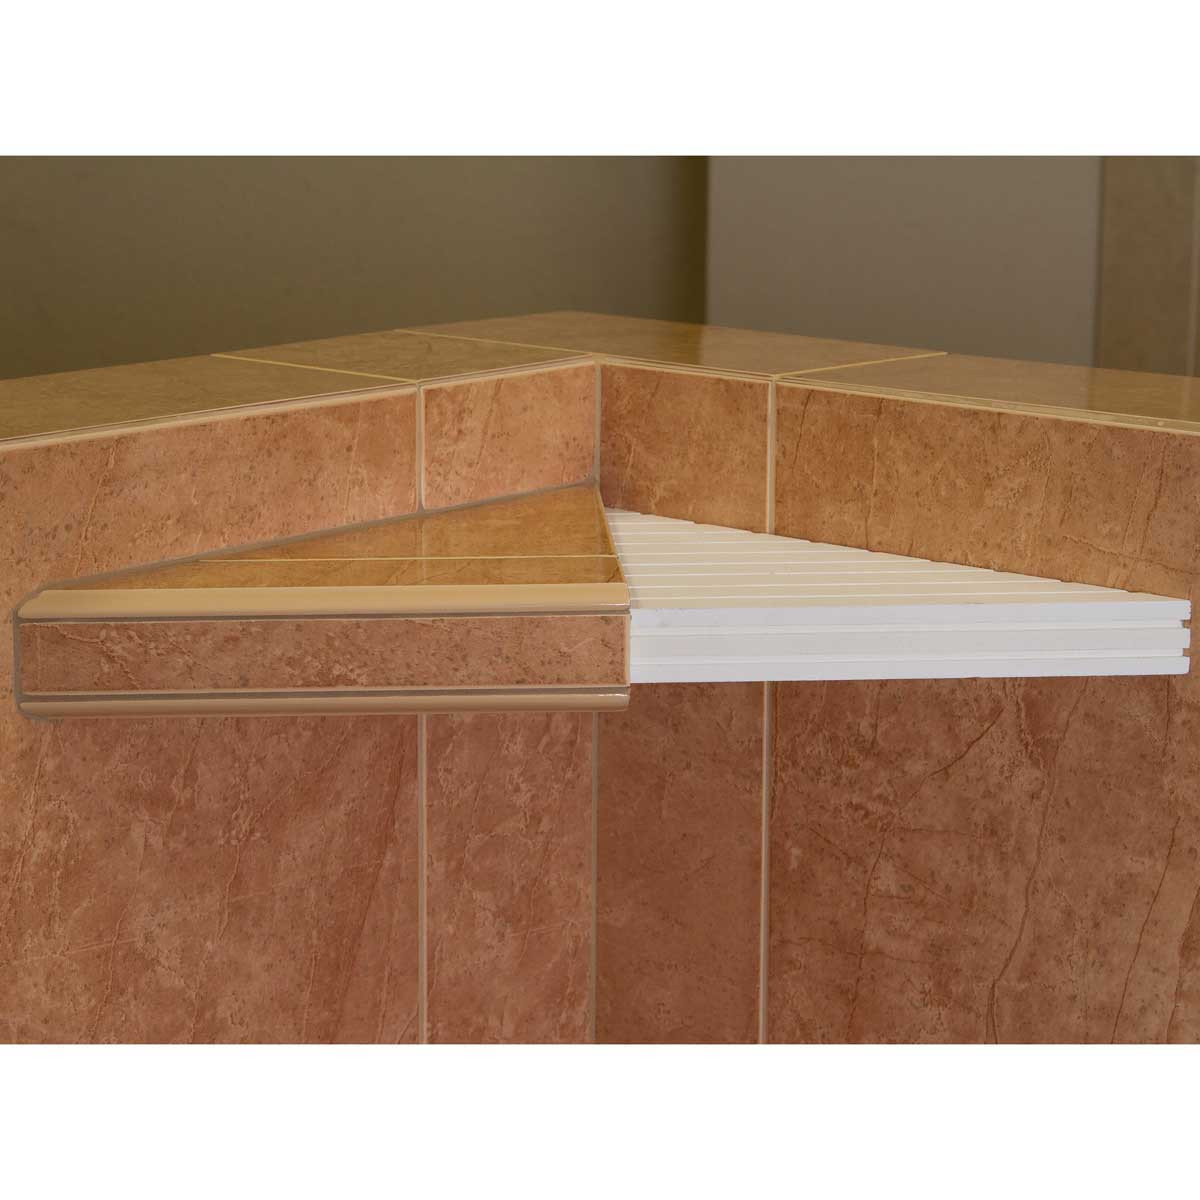 Goof Proof Corner Shelf GPCS-1500